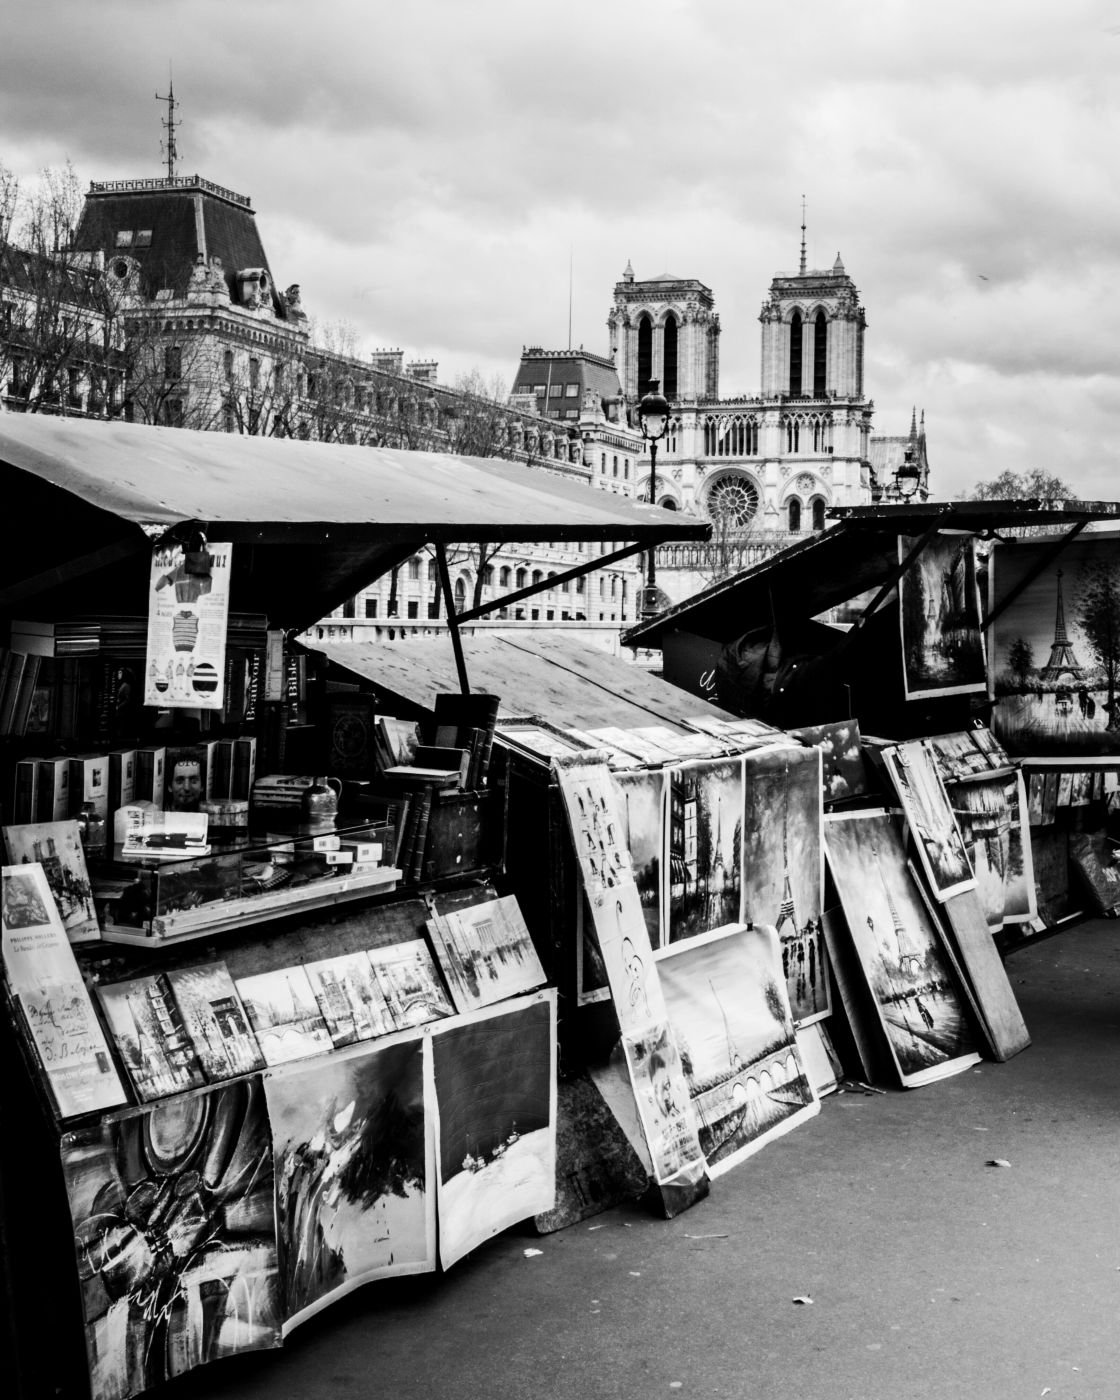 Cathedral and bookstands, France